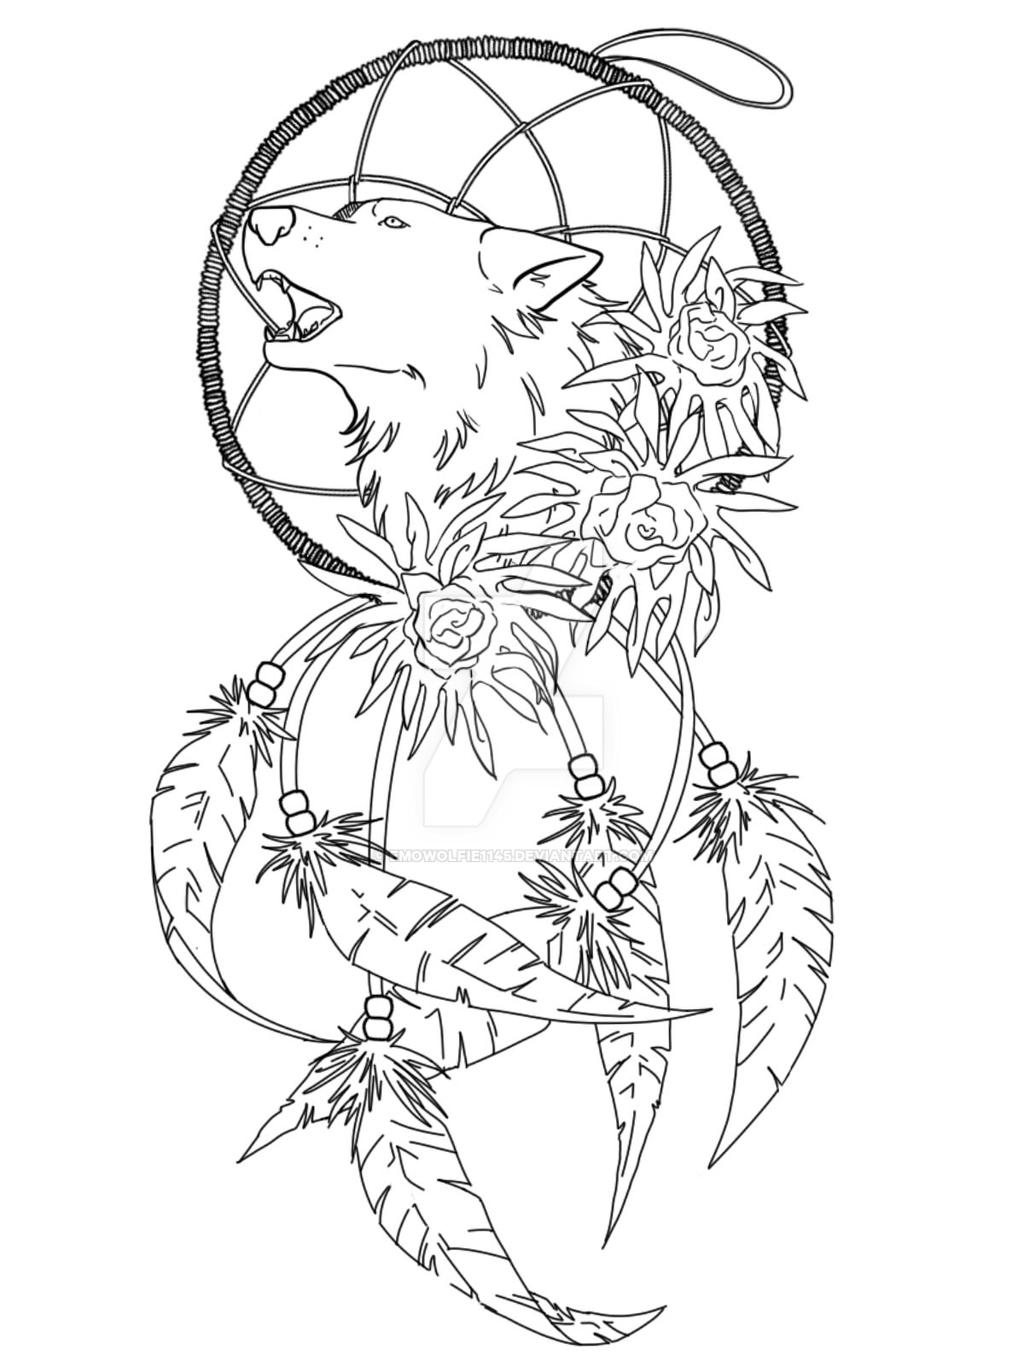 Wolf dreamcatcher tattoo idea by emowolfie1145 on deviantart for Dream catcher tattoo template